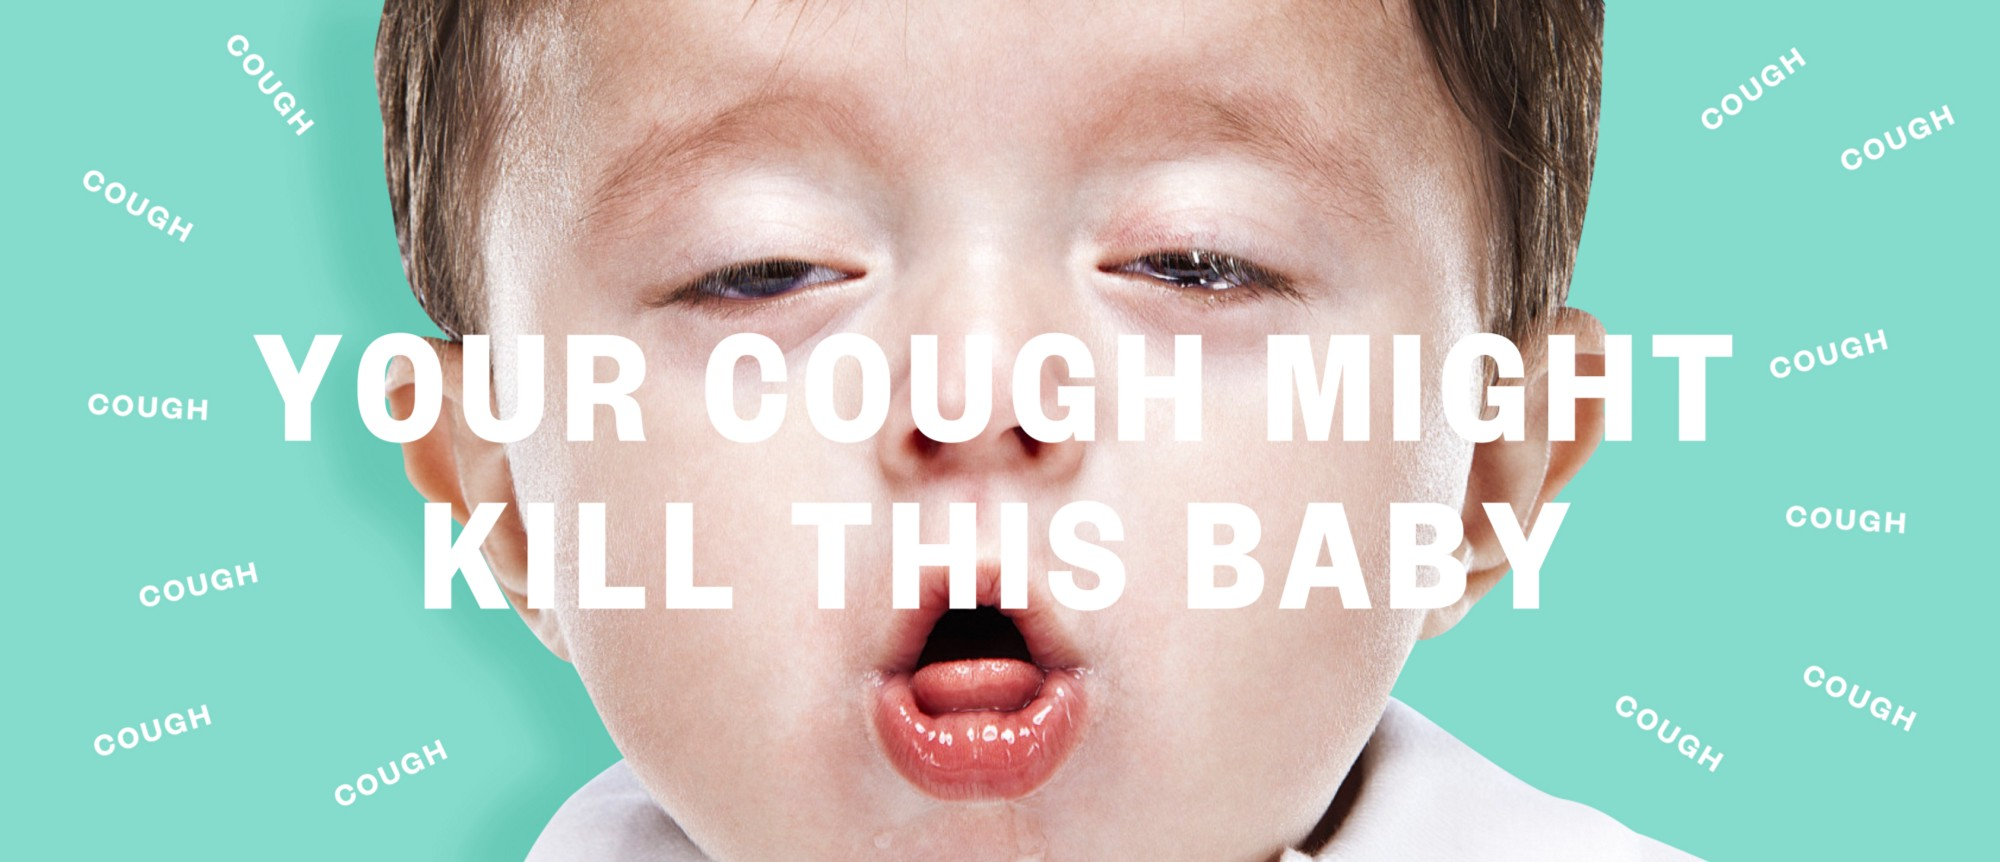 And You Thought Measles Was Bad - Matter - Medium